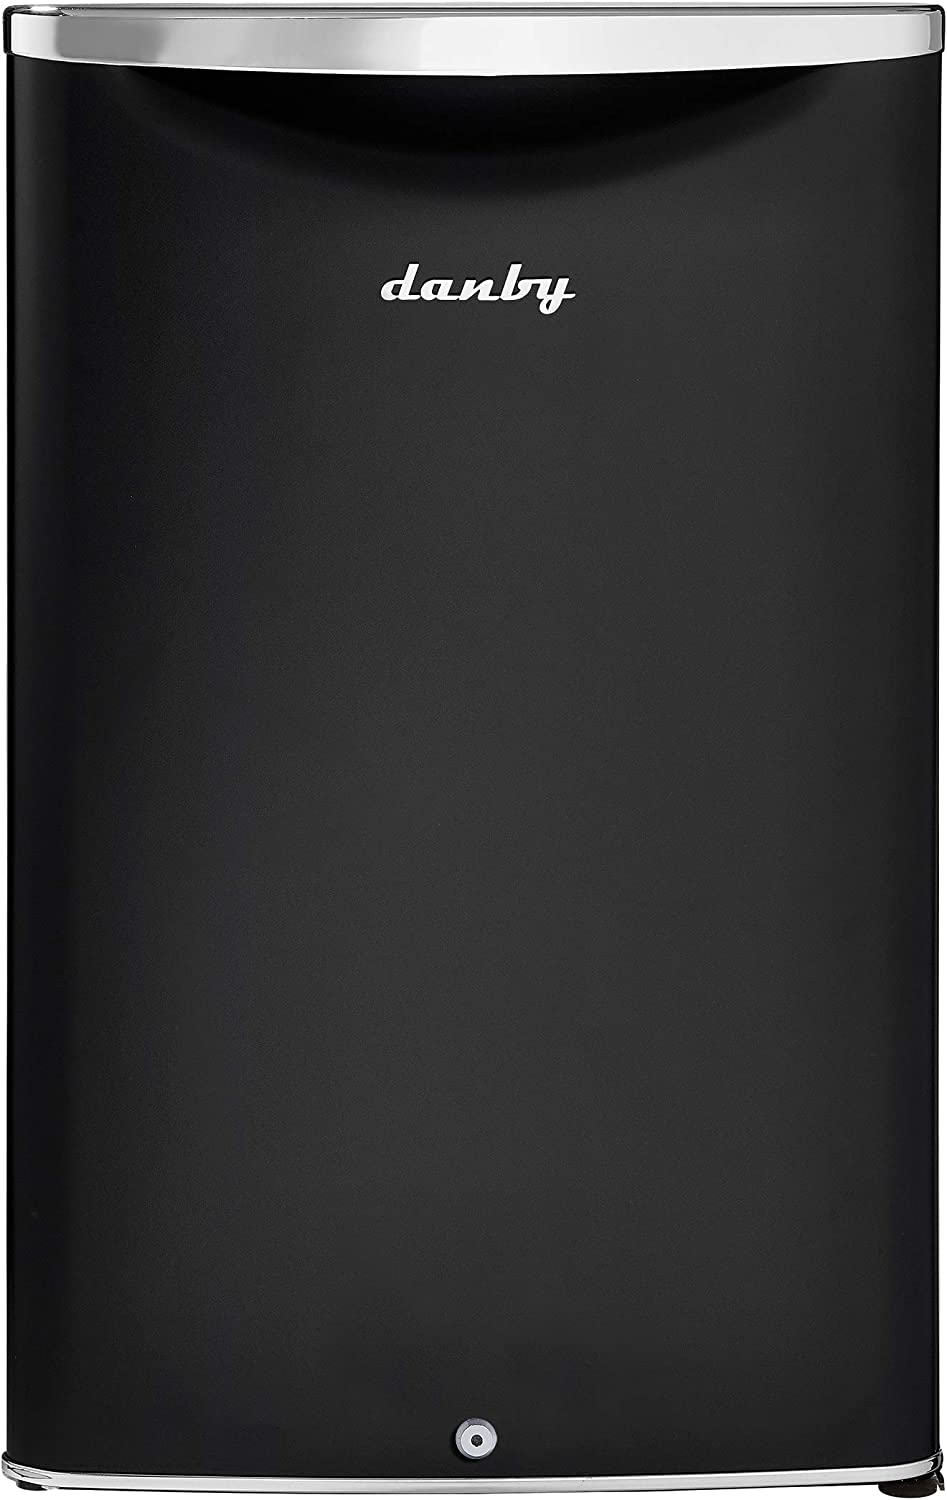 Danby DAR044A6MDB-6 Midnight Metallic Black 4.4 cu. ft. Contemporary Classic Compact Refrigerator